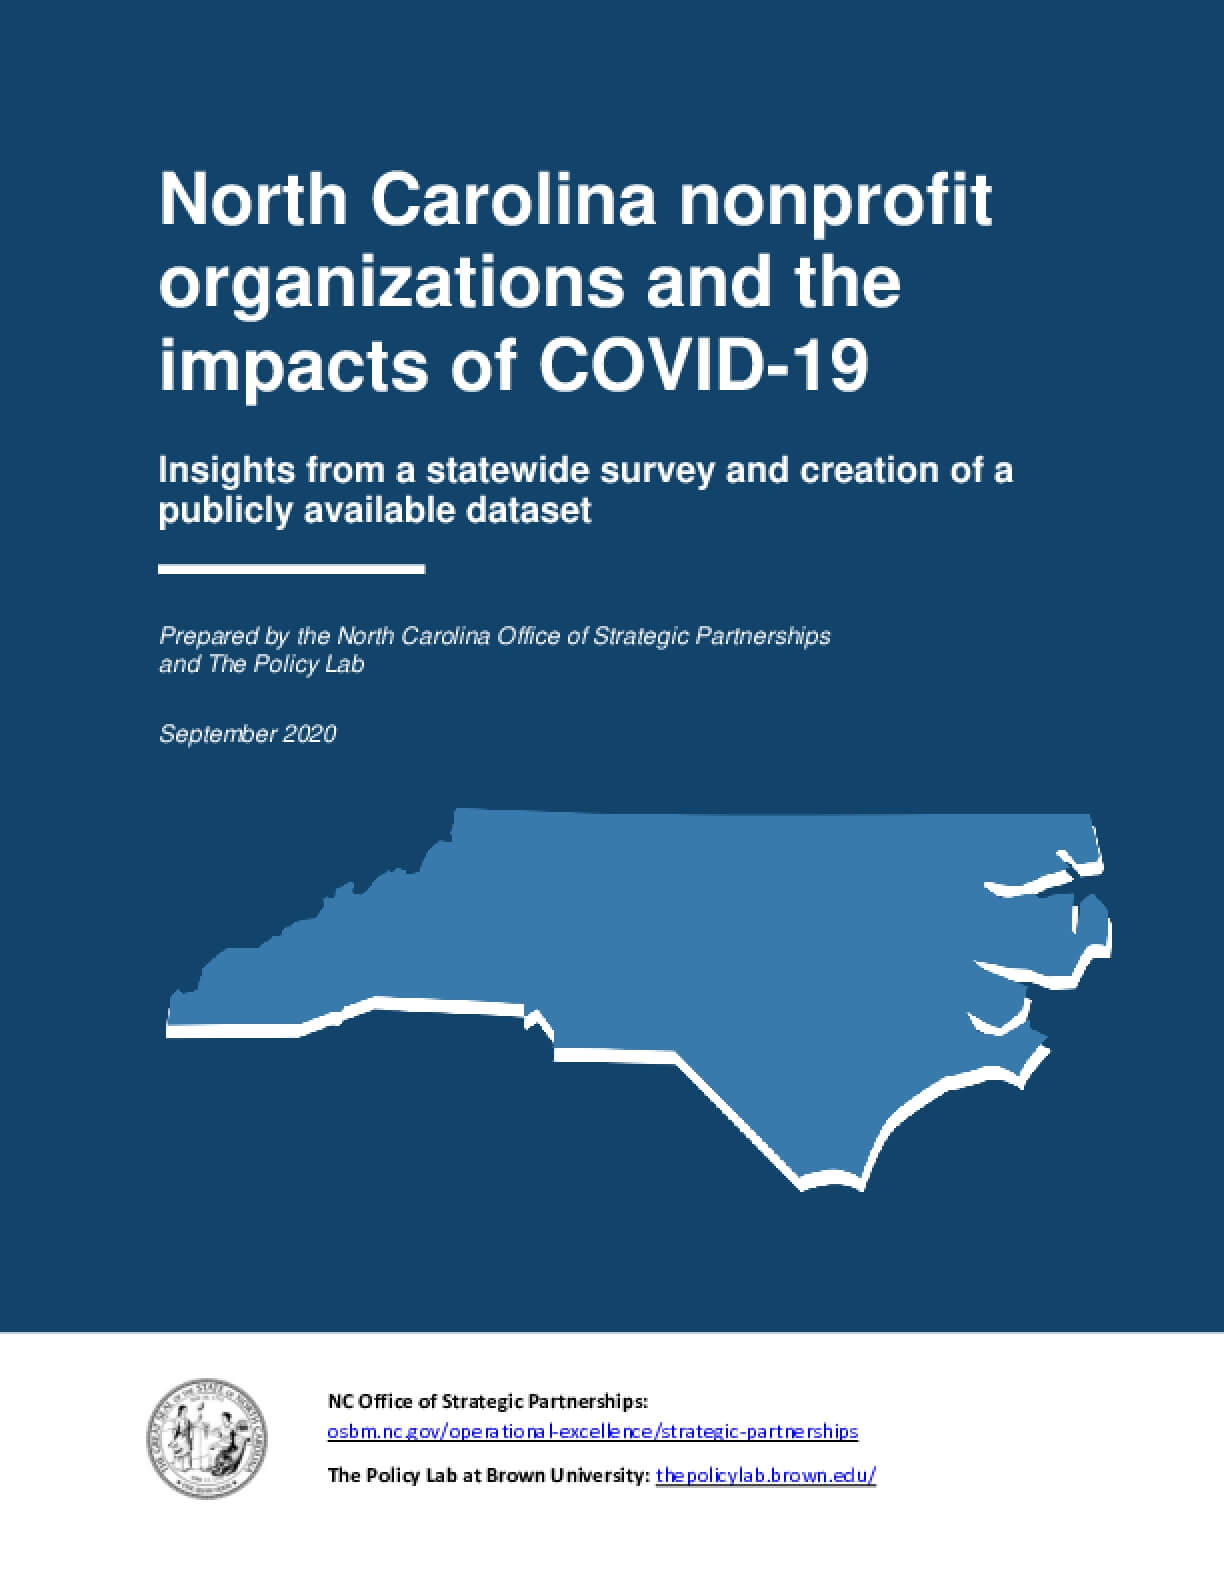 North Carolina Nonprofit Organizations and the Impacts of COVID-19: Insights from a Statewide Survey and Creation of a Publicly Available Dataset